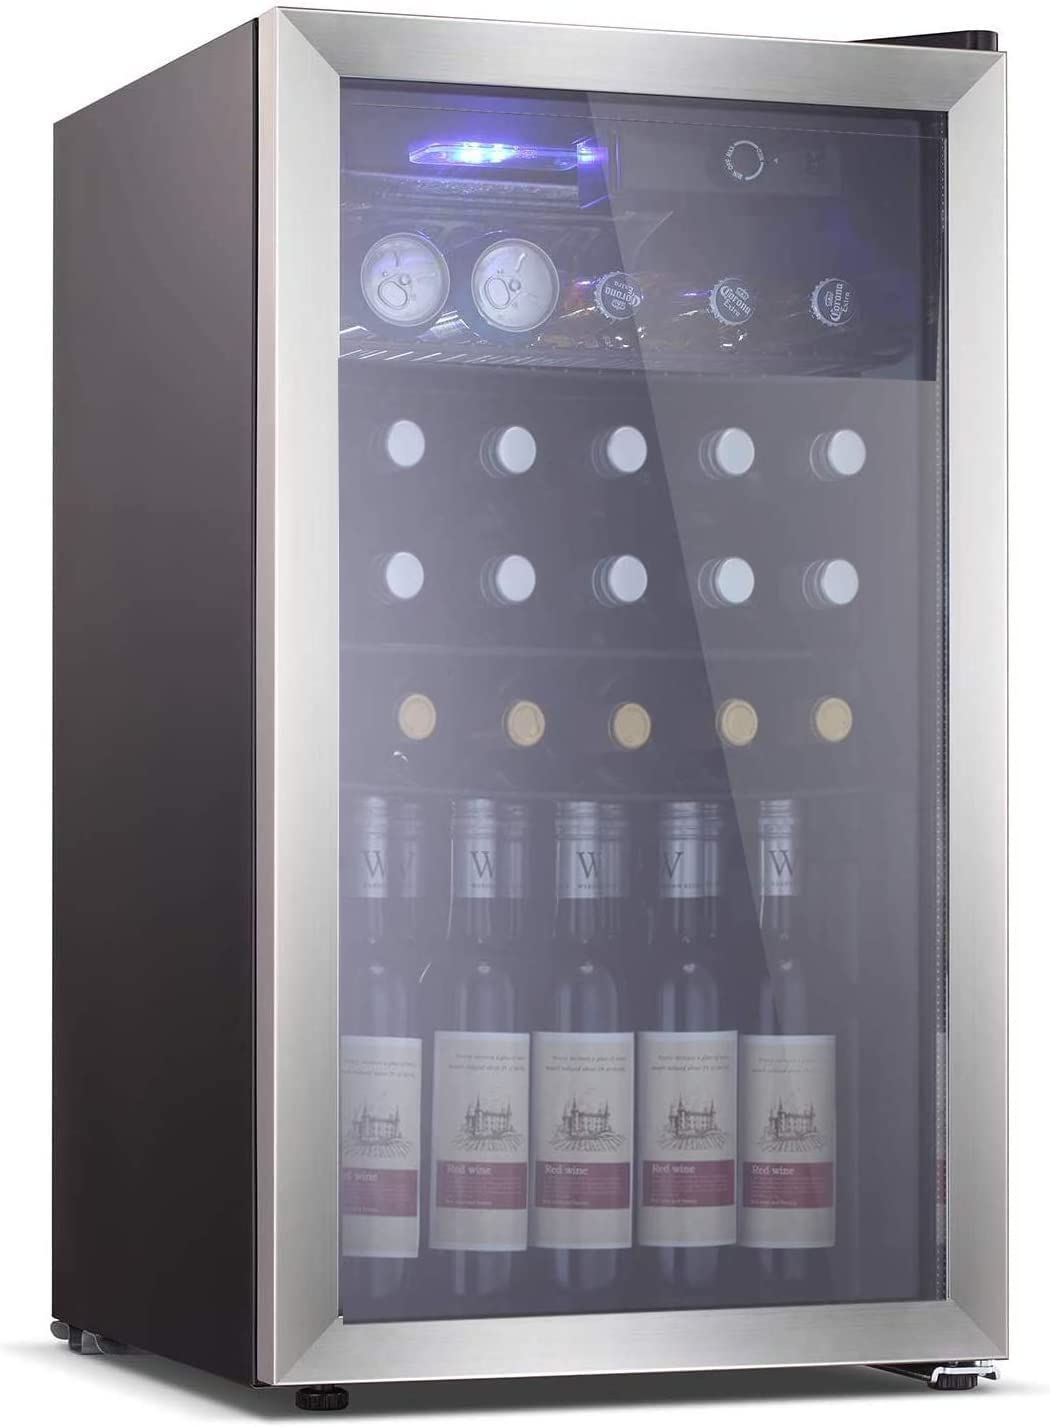 Electactic 26 Bottle Wine Cooler/Cabinet Mini Wine Fridges 130 Can Beverage Refrigerators Small Wine Refrigerator Freestanding Wine Cellar for Red & White Wine Beer 40-61℉ Temperature Control Black